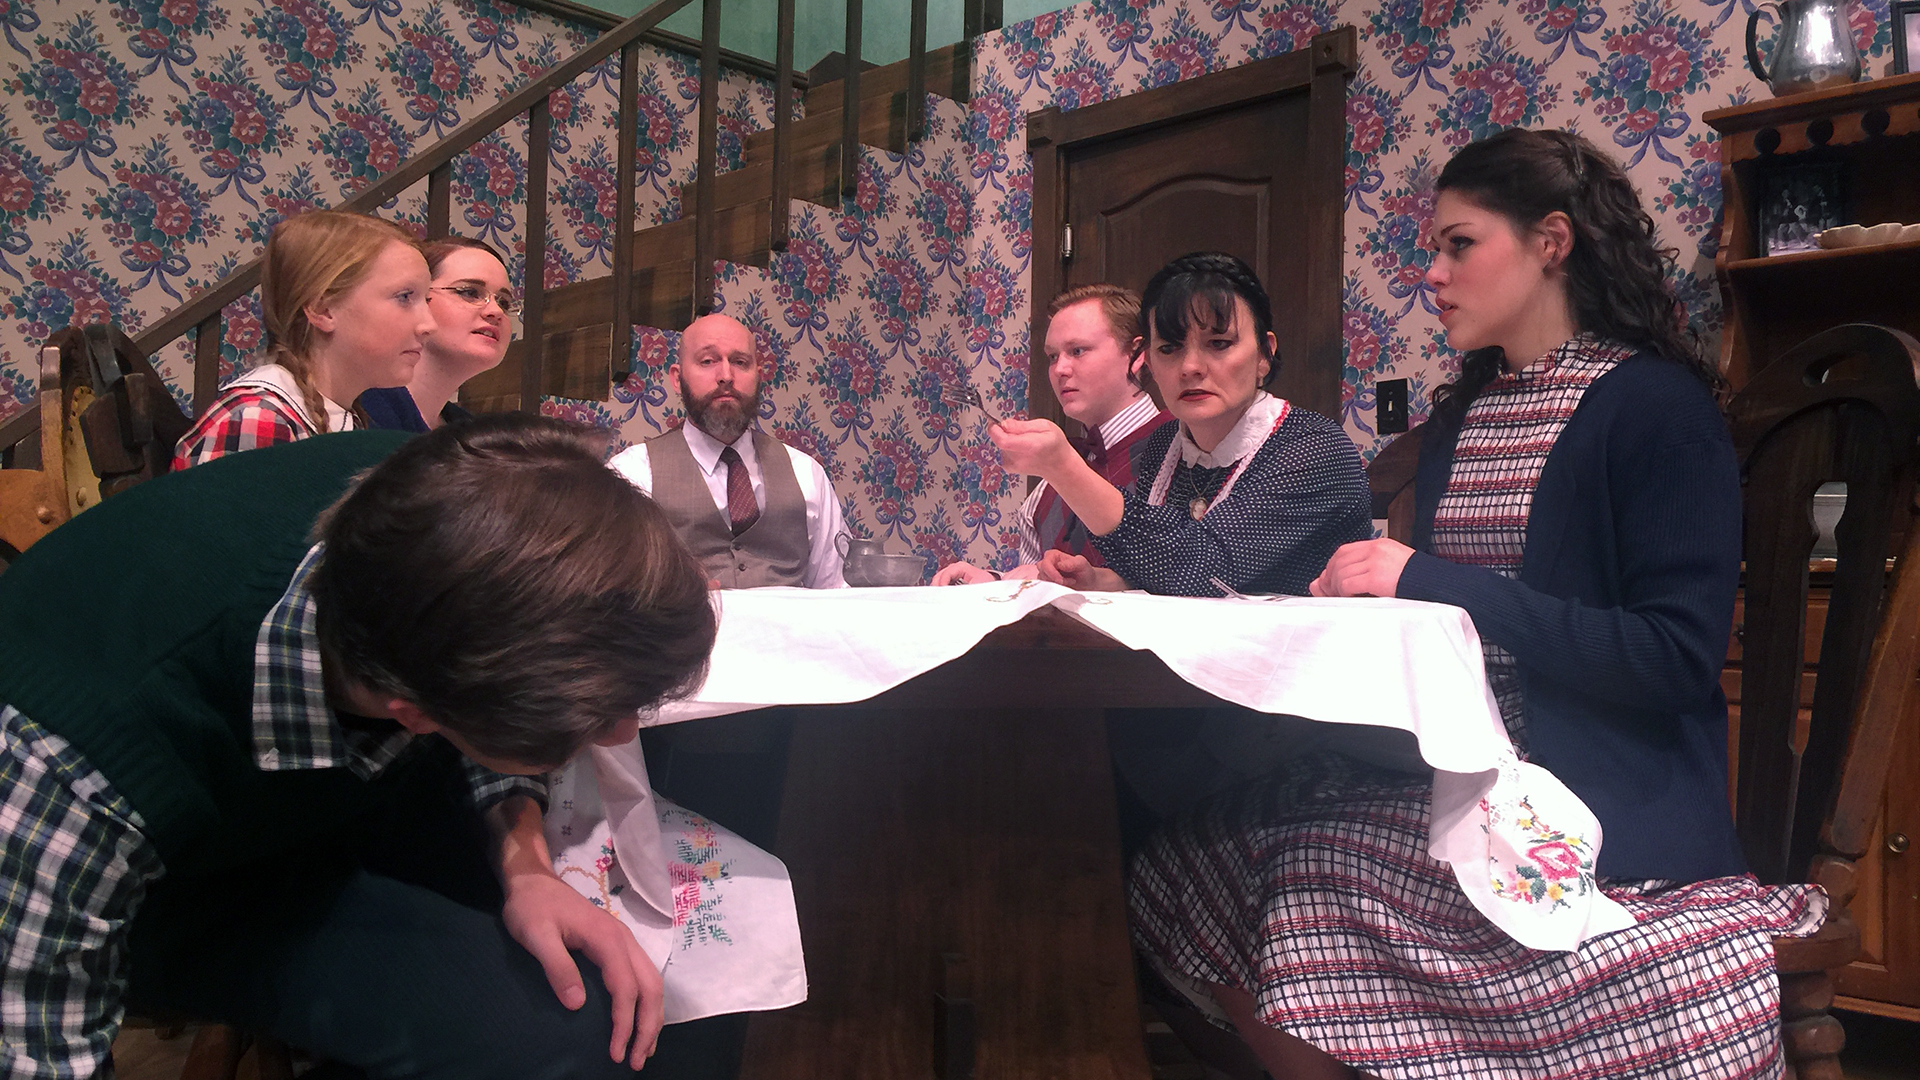 Young star of ALT's 'Brighton Beach Memoirs' brings depth, focus to role, costars say